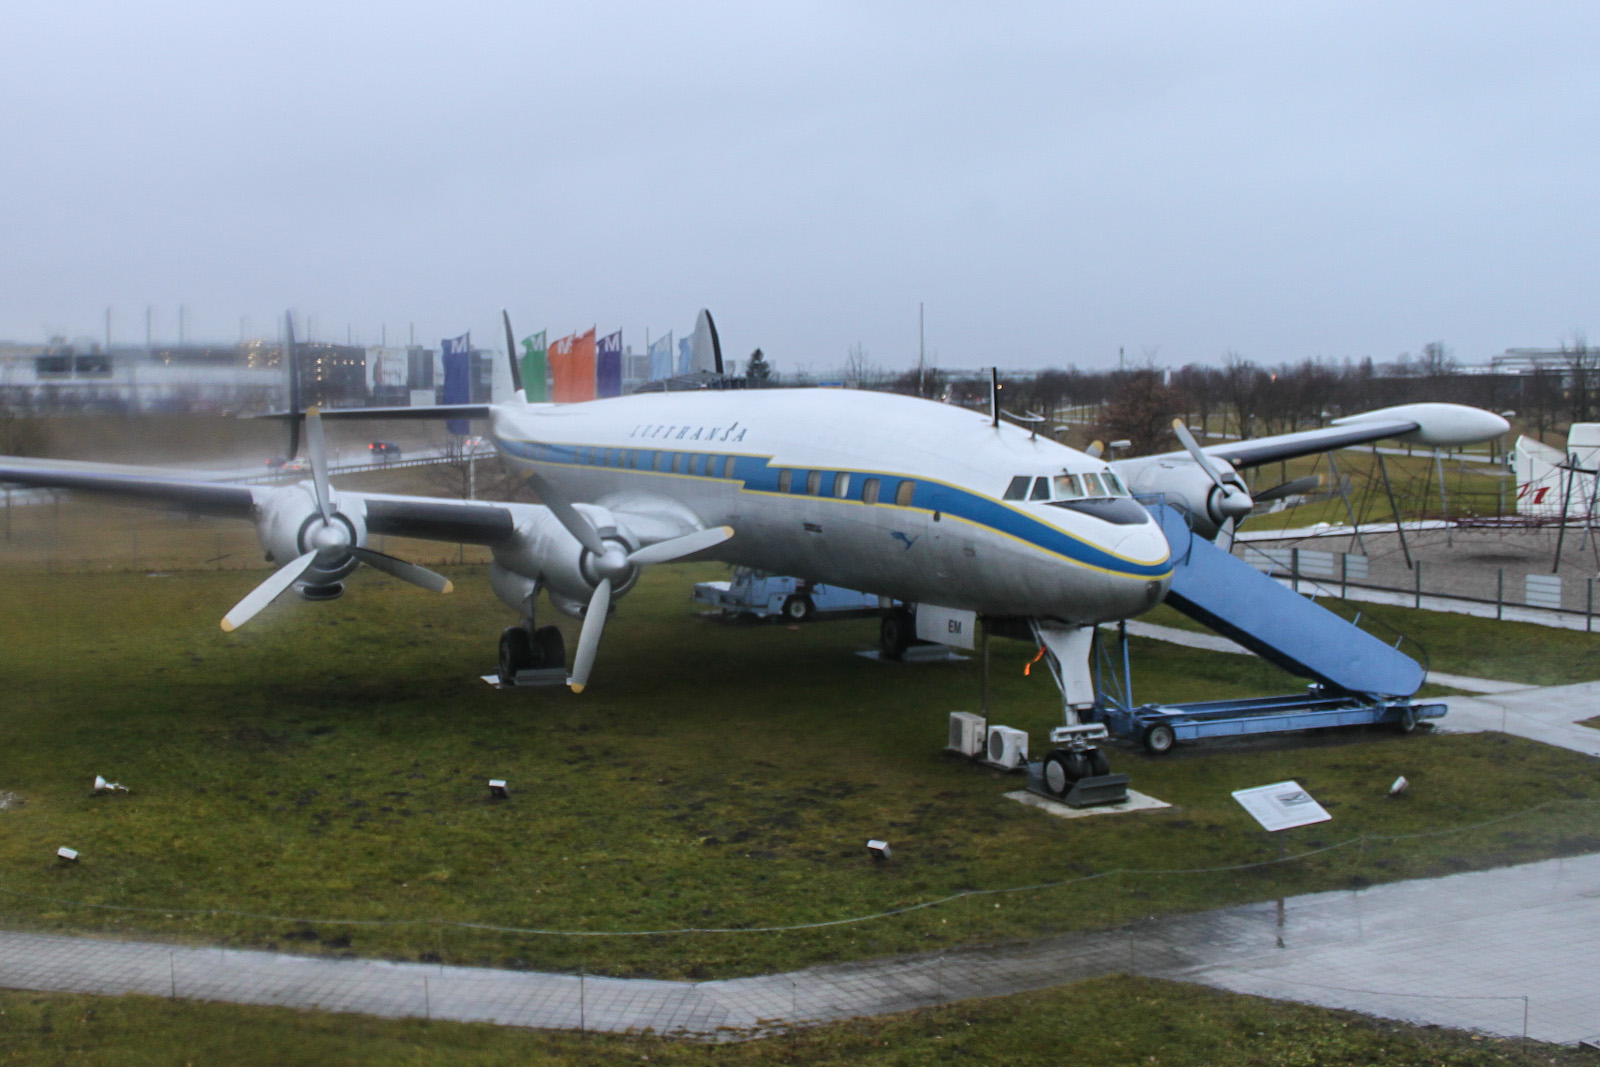 Самолет Lockheed L-1049G Super Constellation в аэропорту Мюнхен